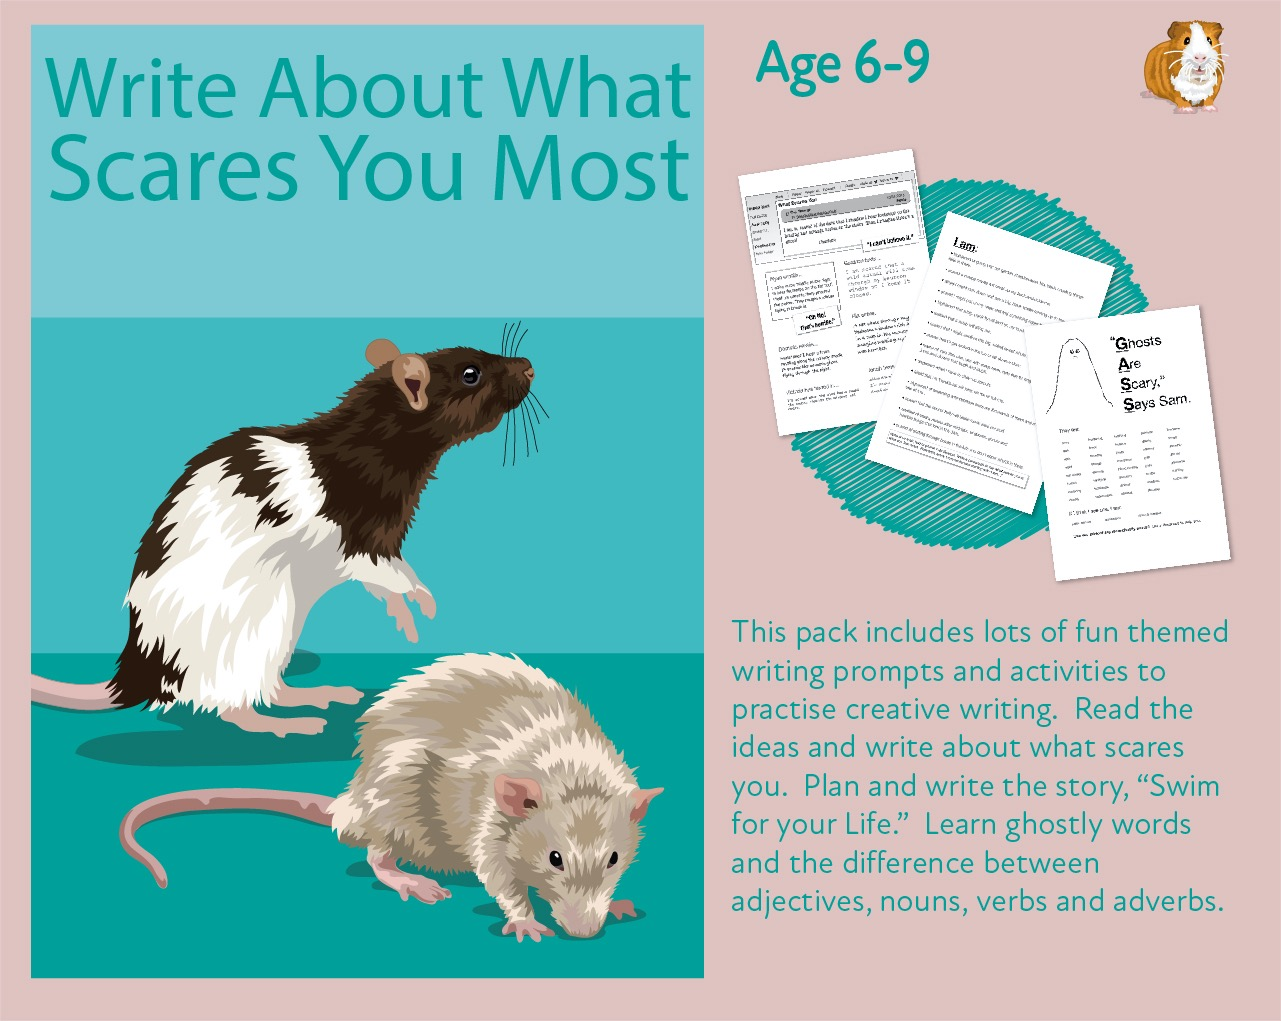 Write About What Scares You Most (7-11 years)